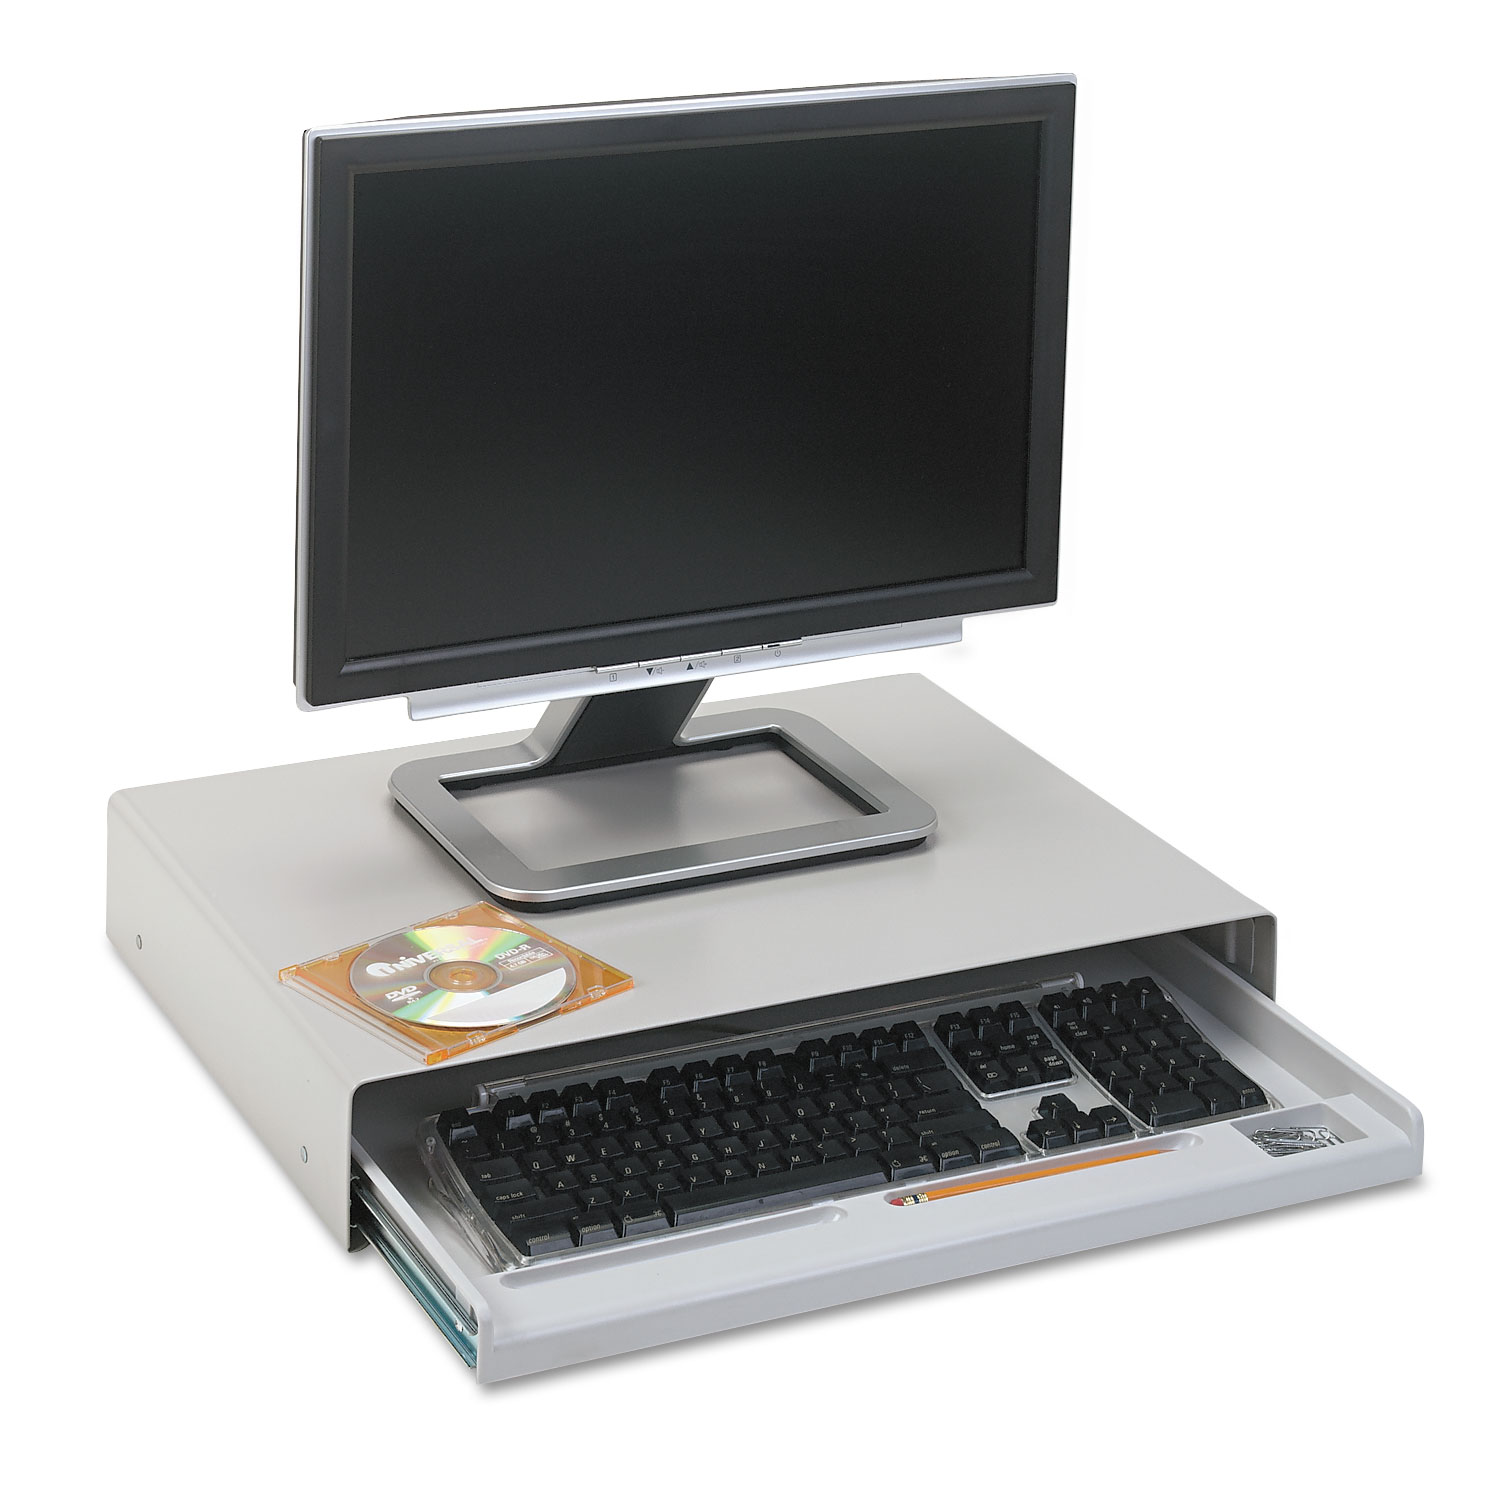 p esi drawer tray keyboard mouse htm